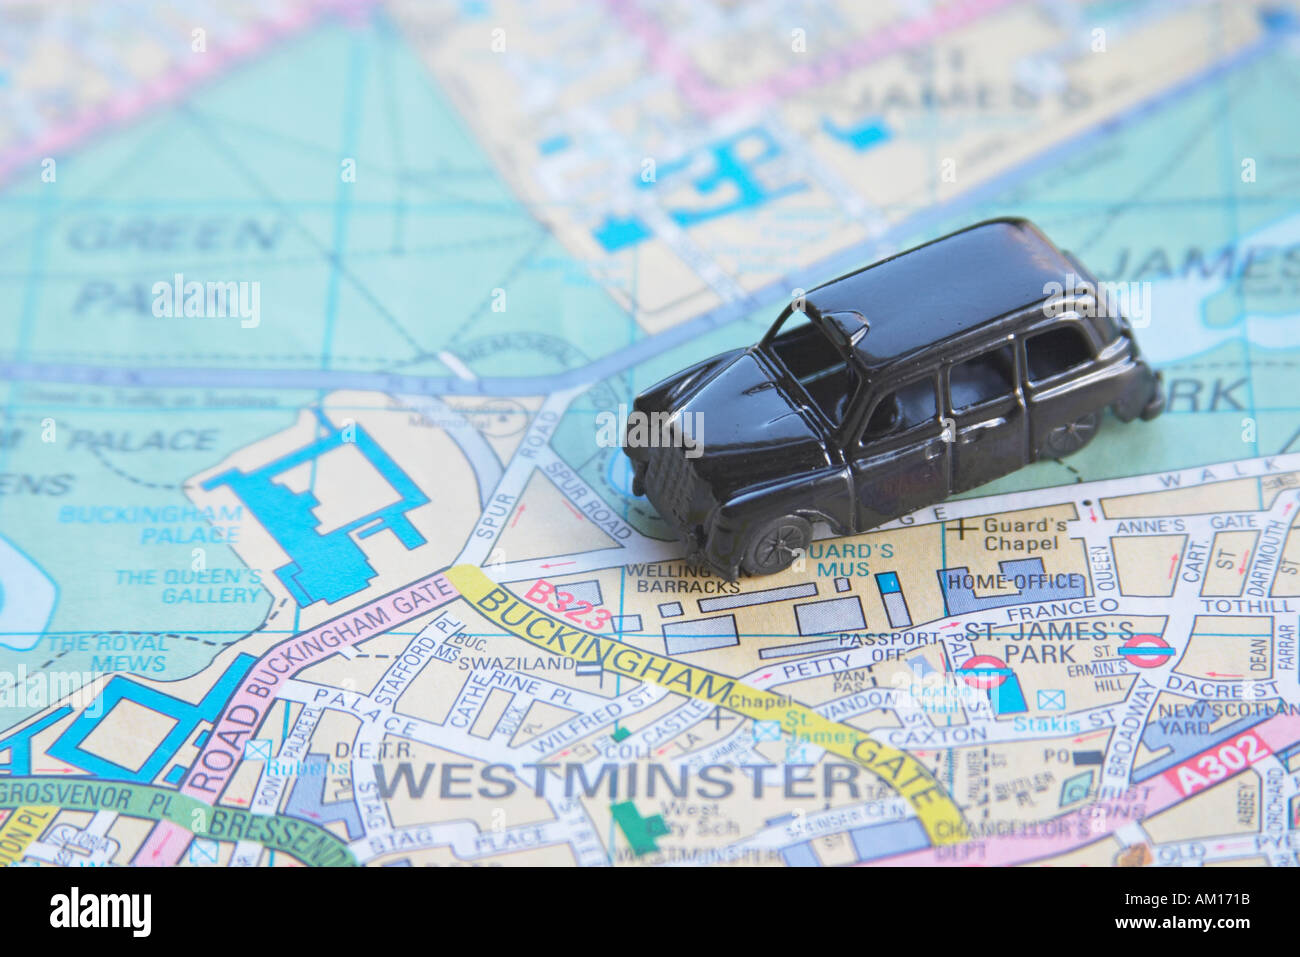 Black cab taxi on map of London England Britain United Kingdom UK - Stock Image